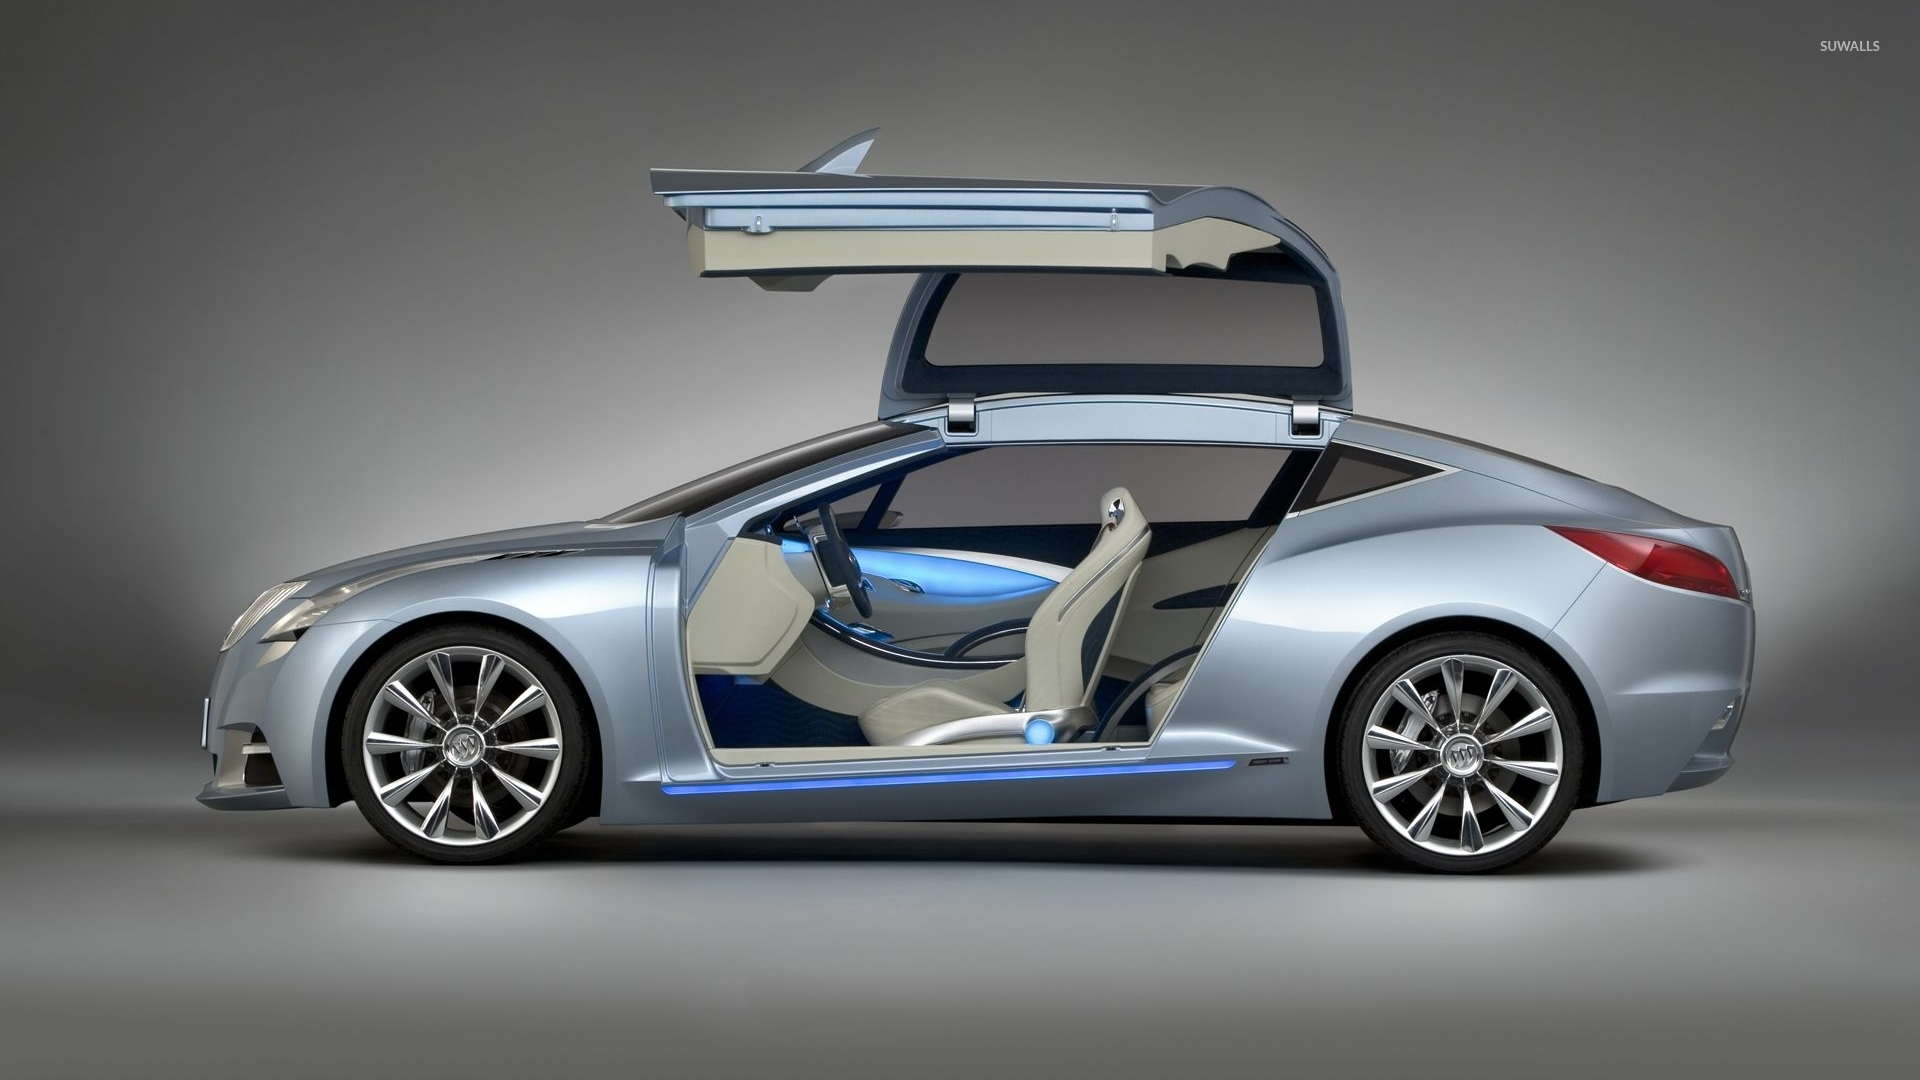 Image 1 Of 49 Buick Riviera Concept 2018 Hottest Car 1951 Xp 300 Wallpaper Wallpapers 33445